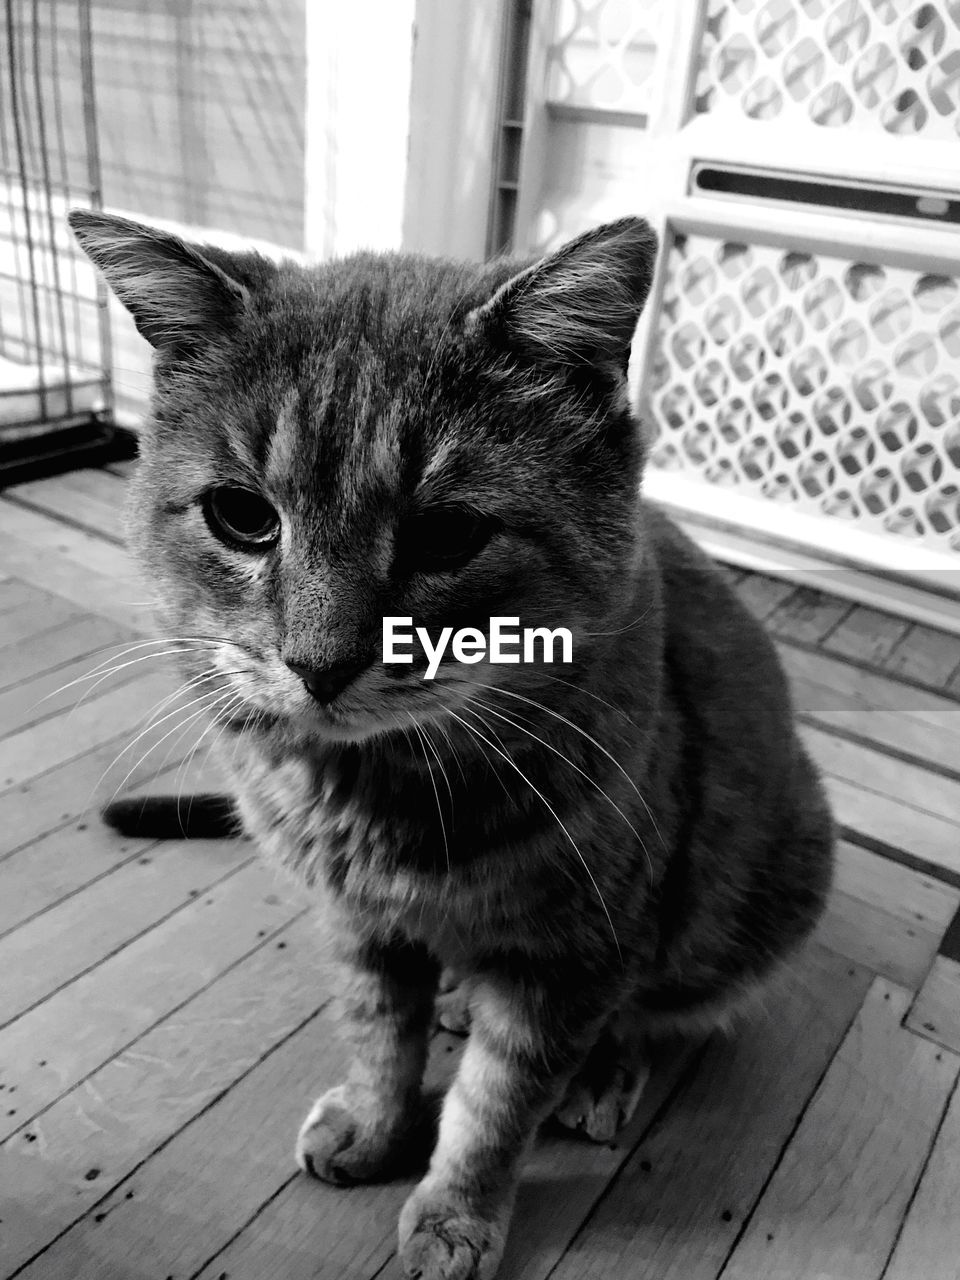 domestic, mammal, animal themes, animal, pets, domestic animals, domestic cat, cat, one animal, feline, vertebrate, no people, indoors, whisker, flooring, close-up, portrait, sitting, focus on foreground, looking, animal eye